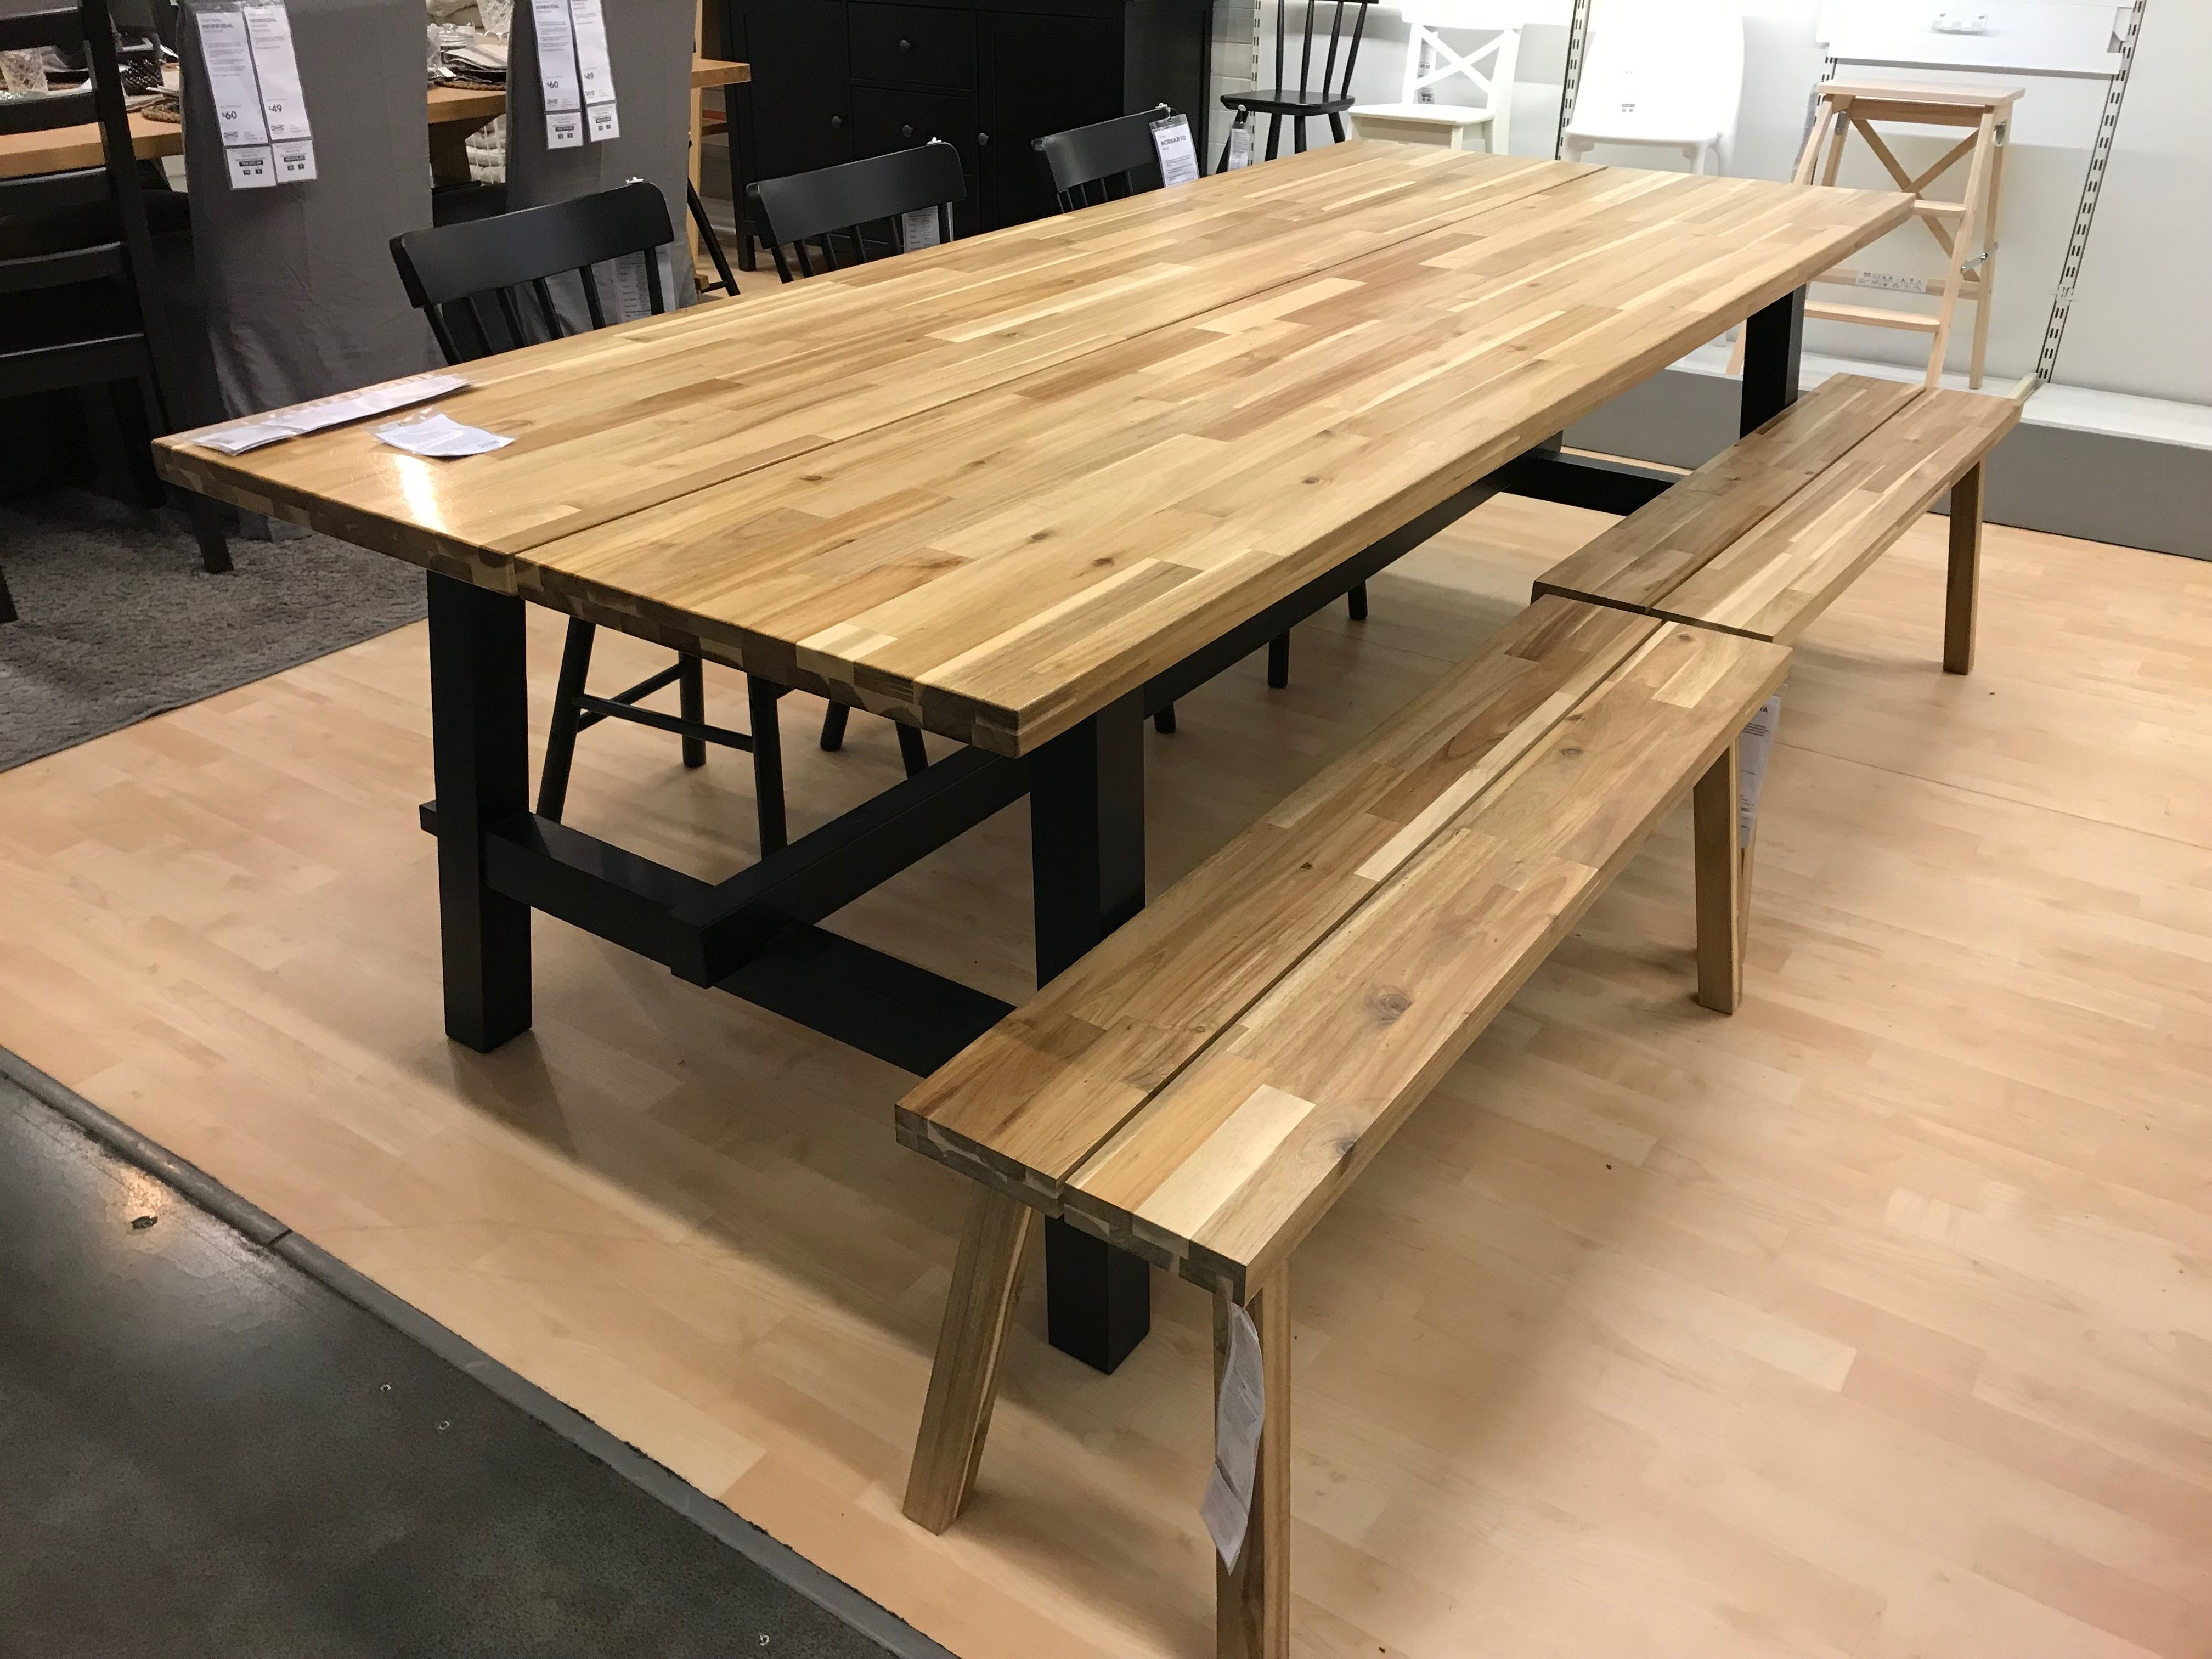 Ikea This Table Frame With A Live Edge Wooden Slab On Top Instead